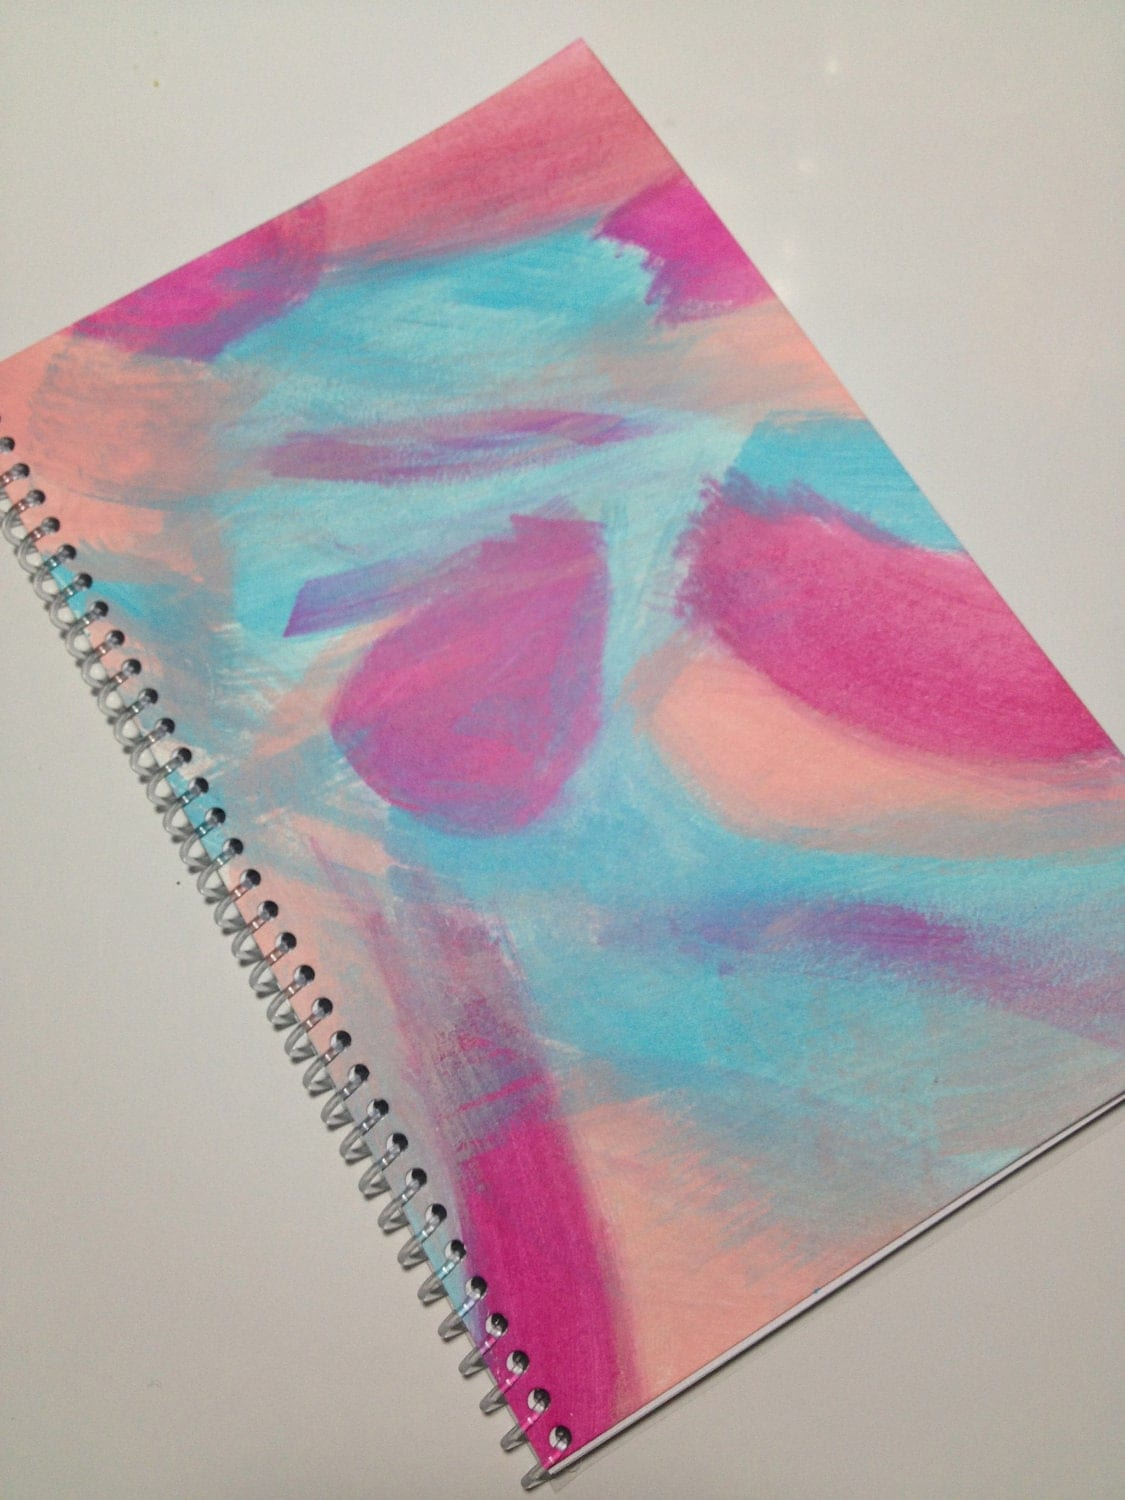 Original Abstract Painting on Notebook - Light Pink, Magenta and Light Blue - ShadesOfColorArt